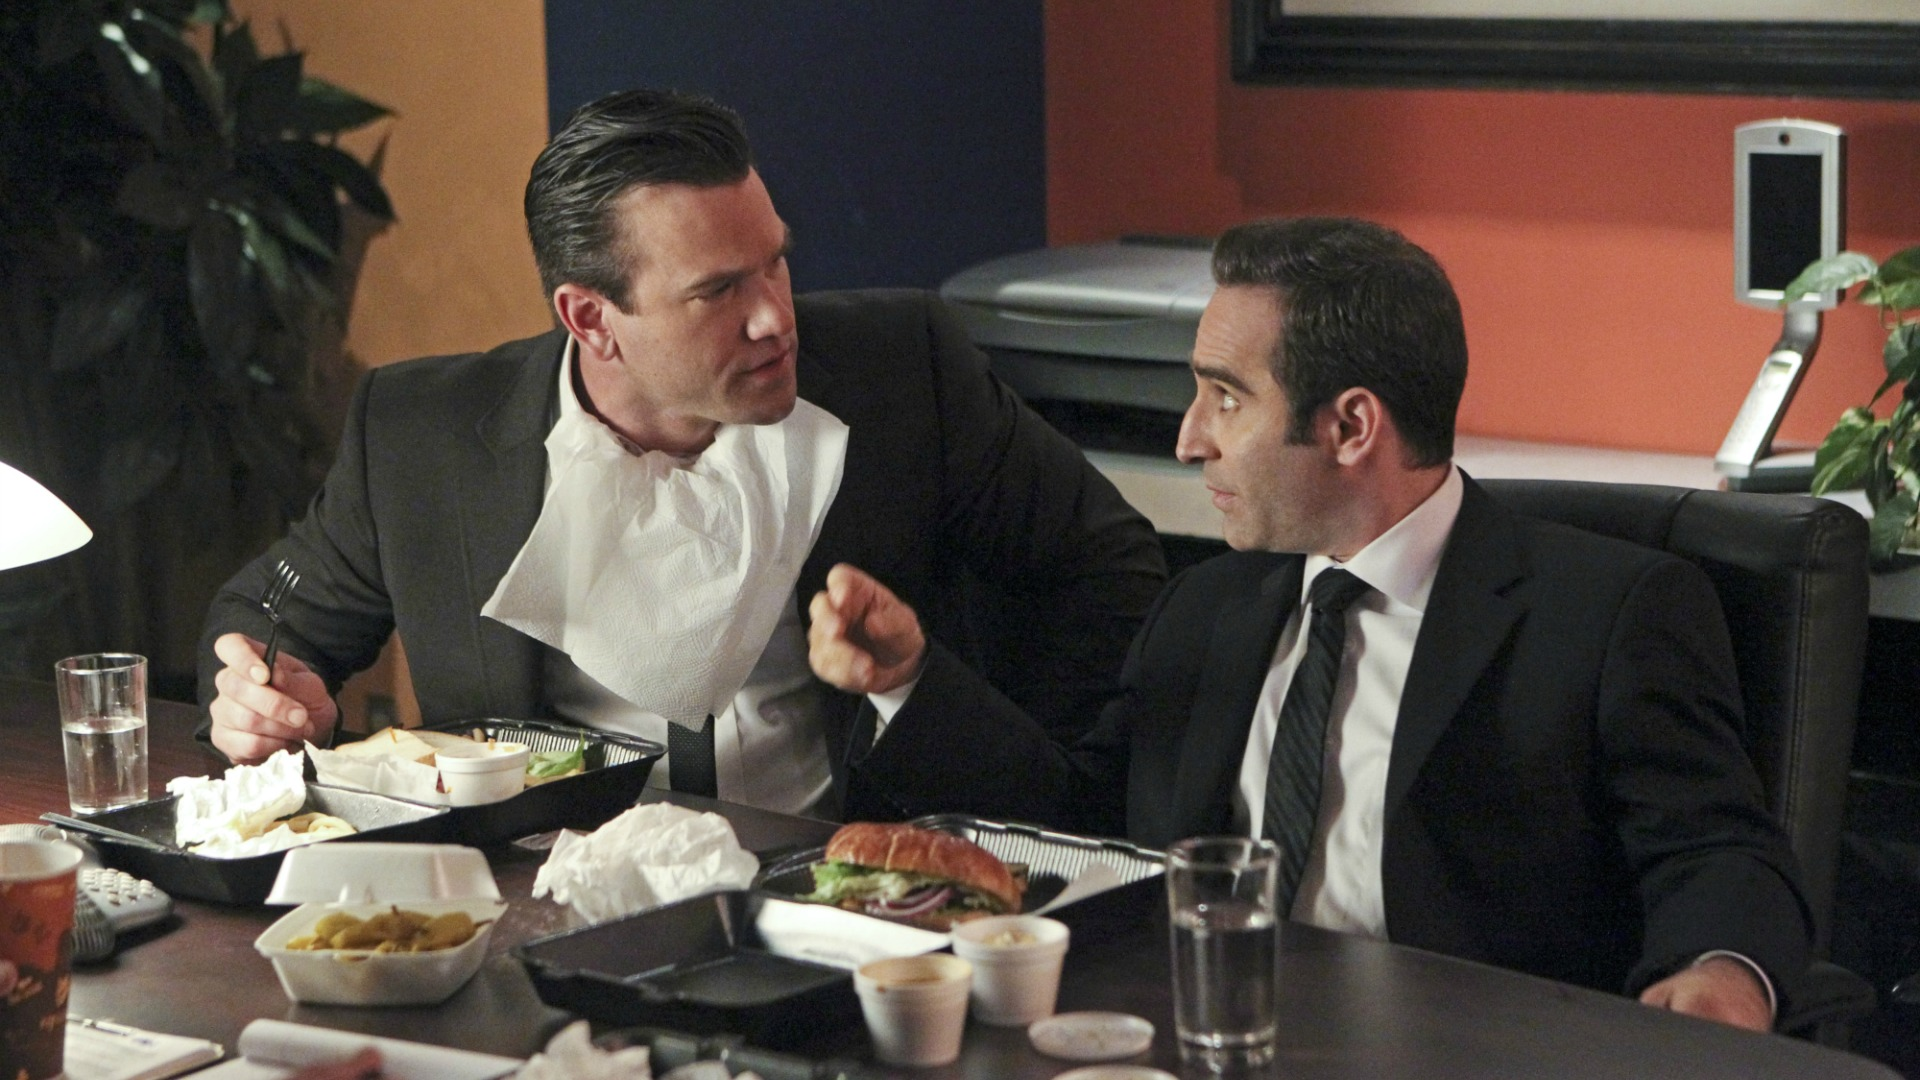 Two suspects share a meal.